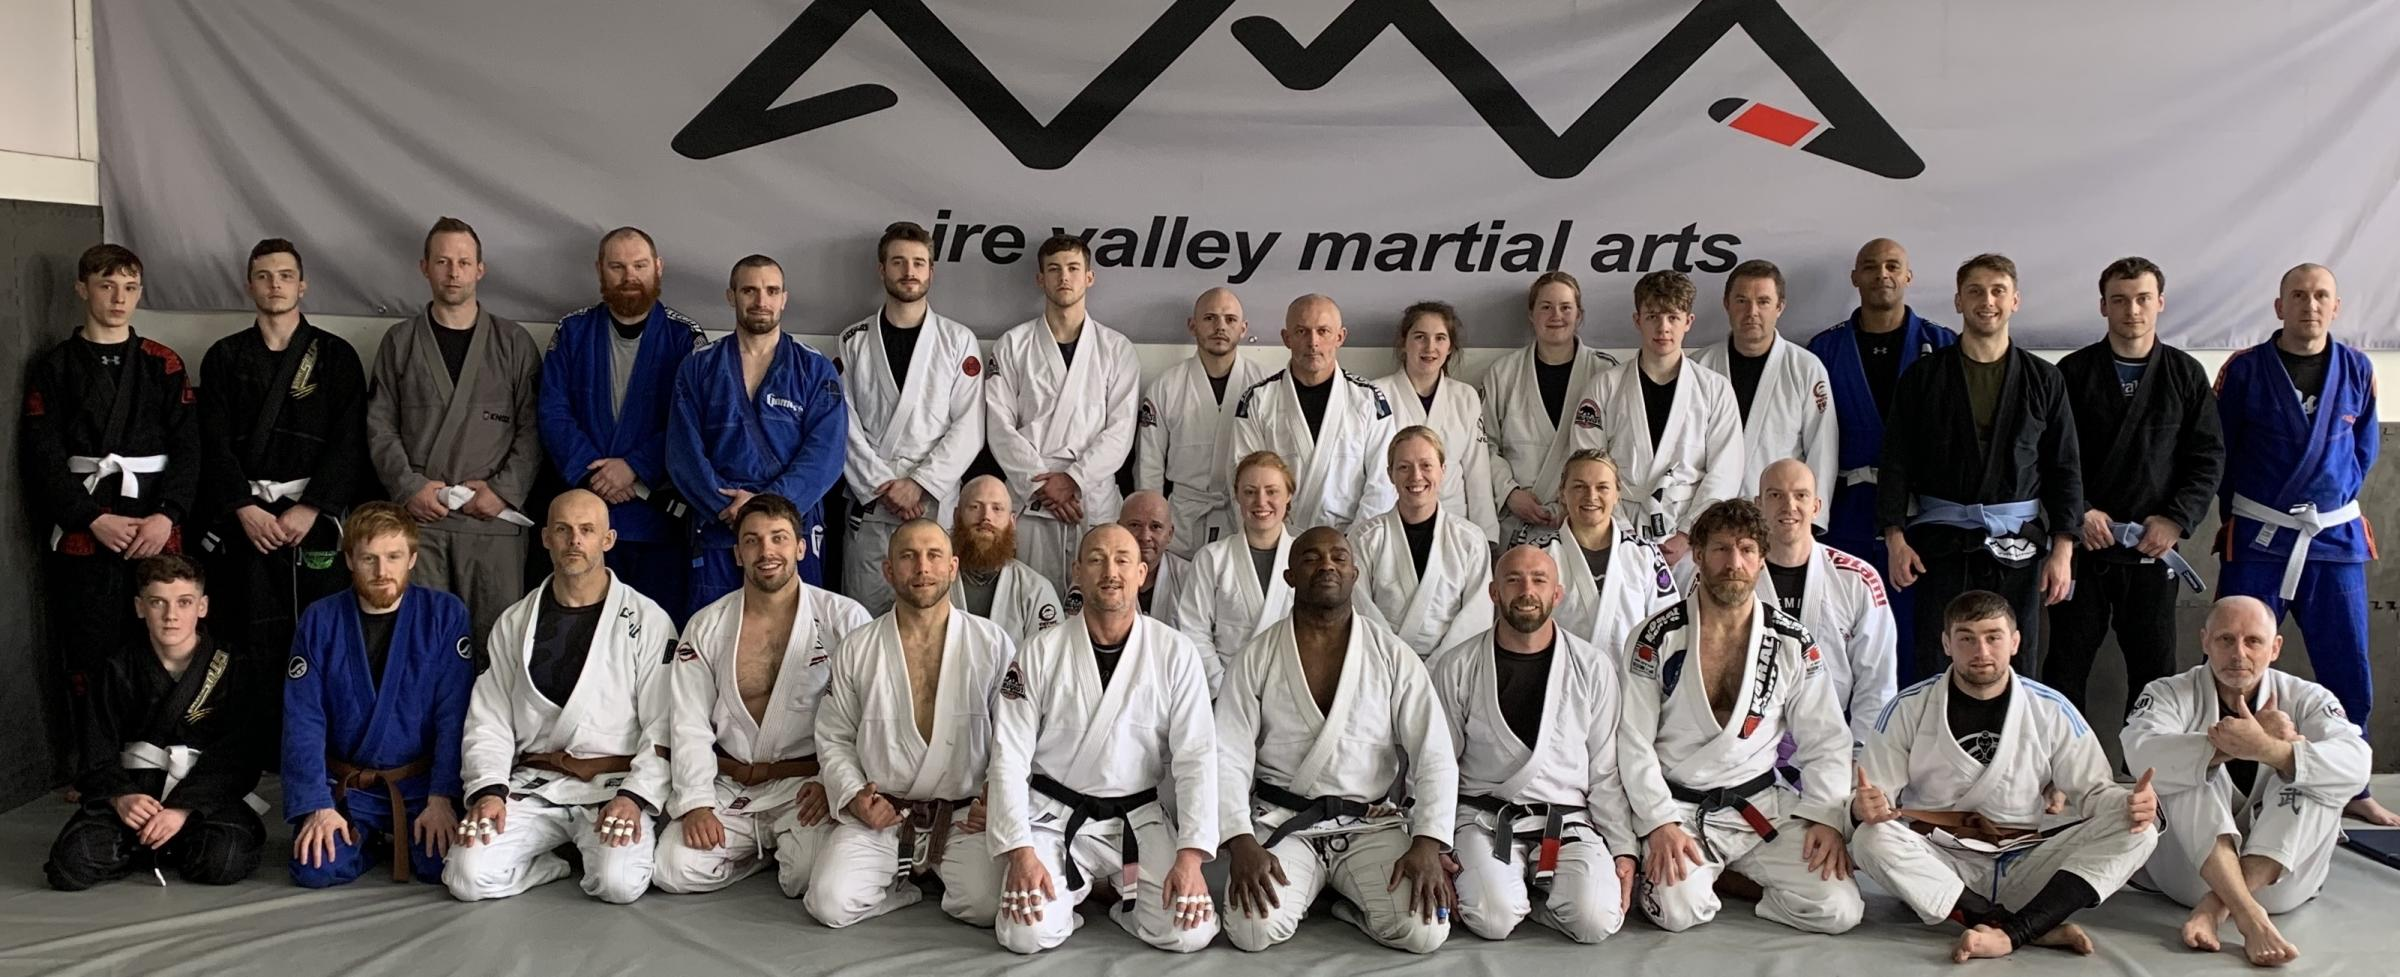 Aire Valley Martial Arts line up after hosting multiple-time World Brazilian Jiu Jitsu champion Leo Negao for a grading and seminar.